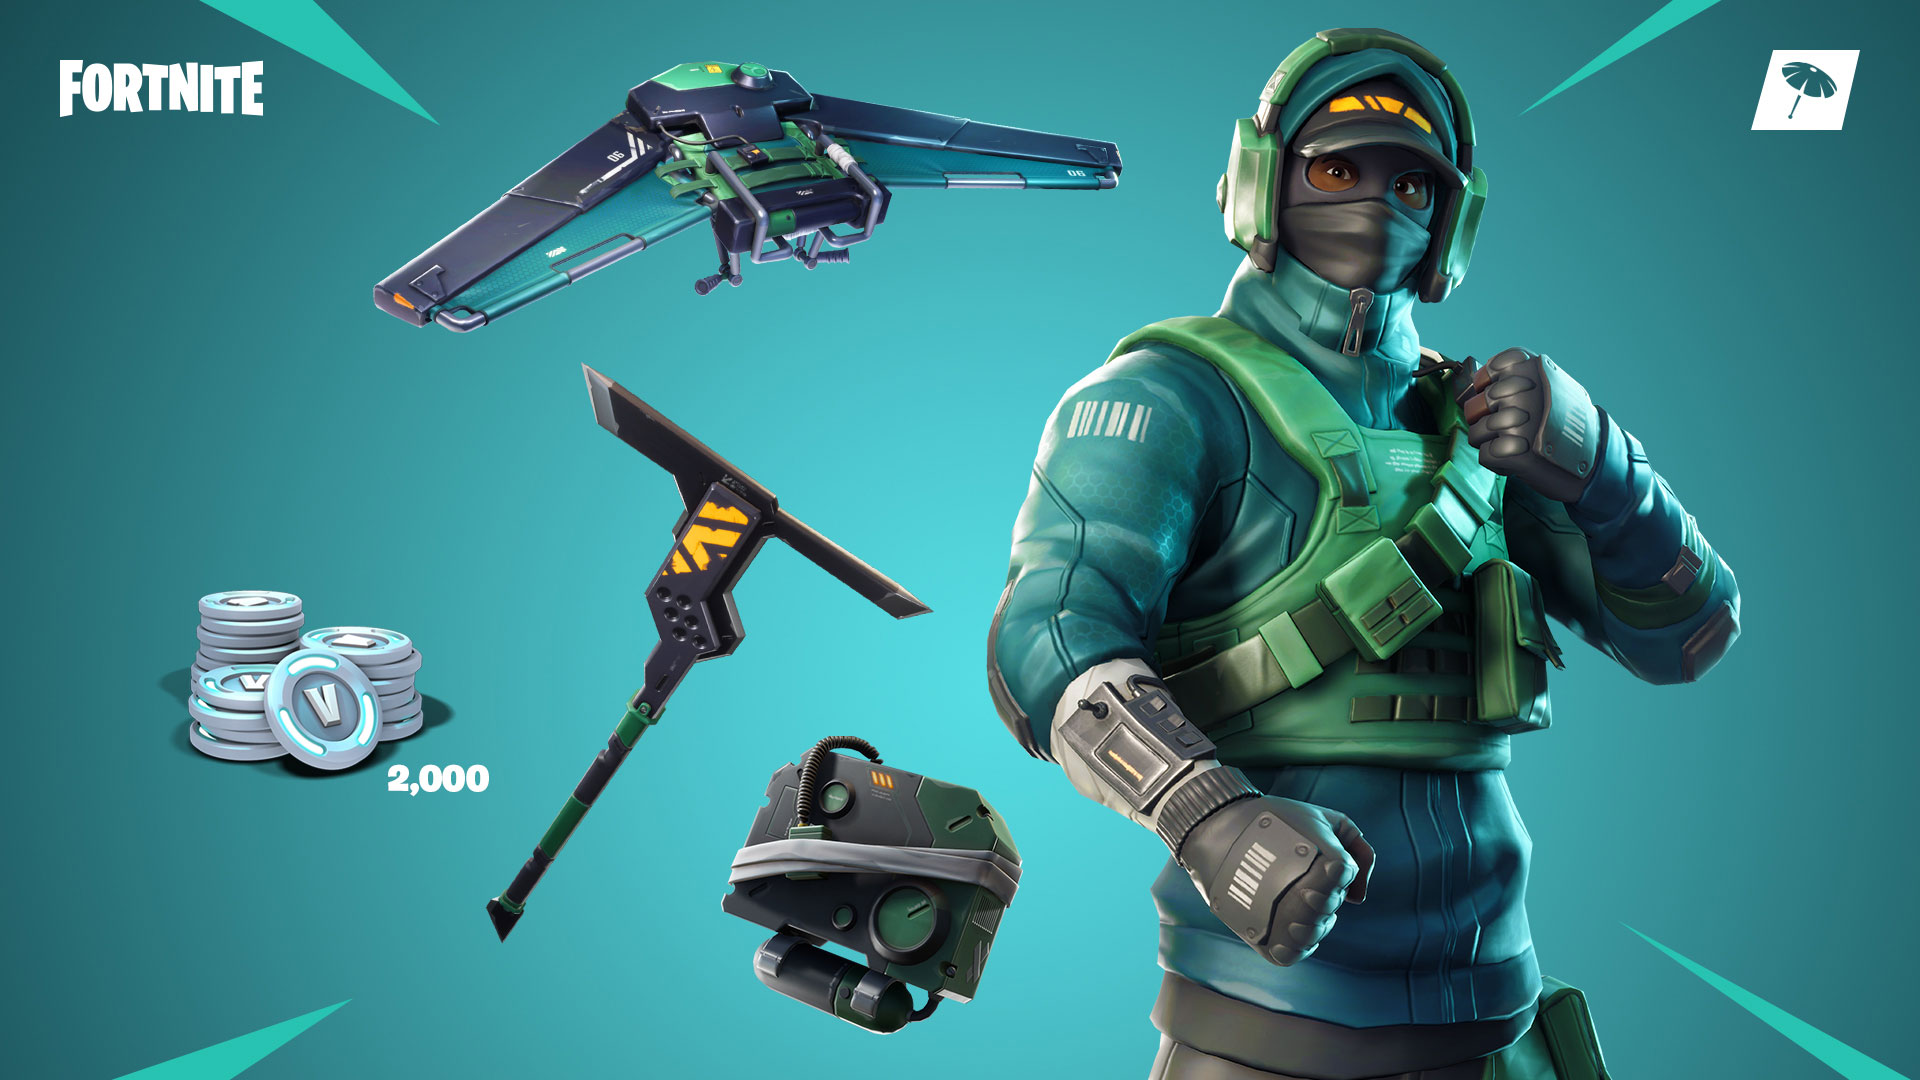 nvidia s latest geforce gtx bundle offer gets fortnite players ready for season 7 pc gamer - fortnite reboot card expires